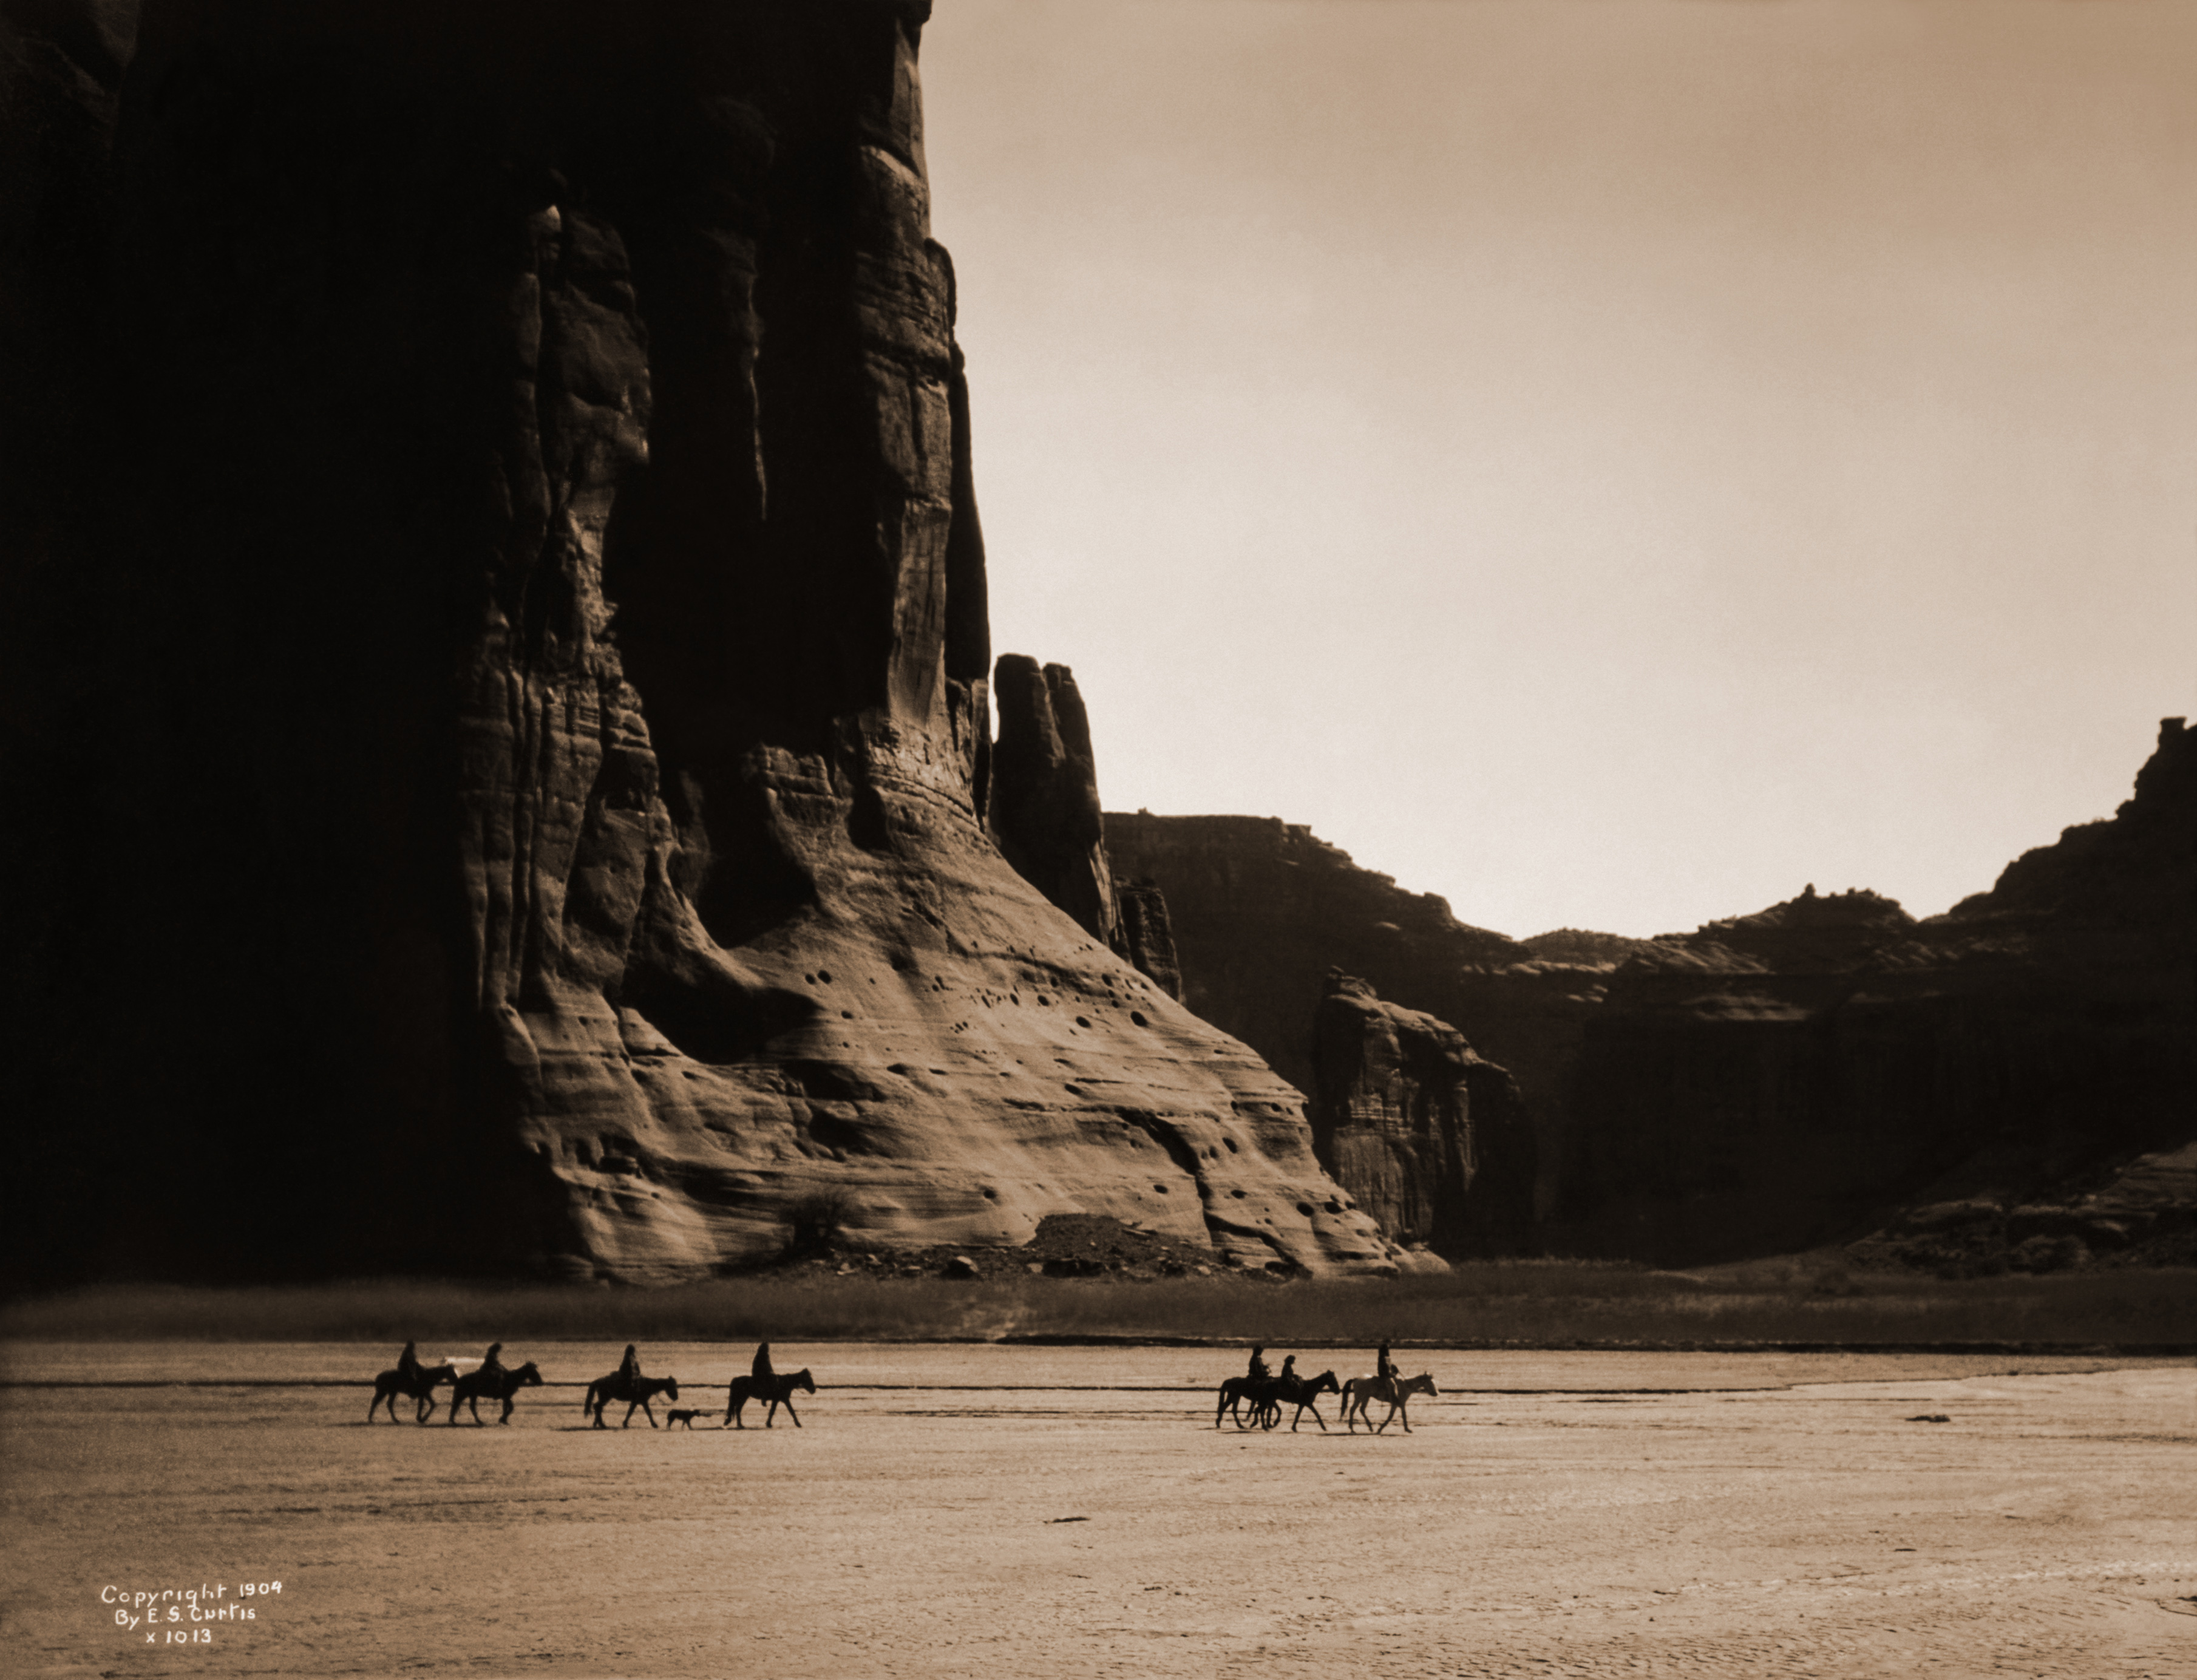 http://upload.wikimedia.org/wikipedia/commons/5/5c/Canyon_de_Chelly%2C_Navajo.jpg